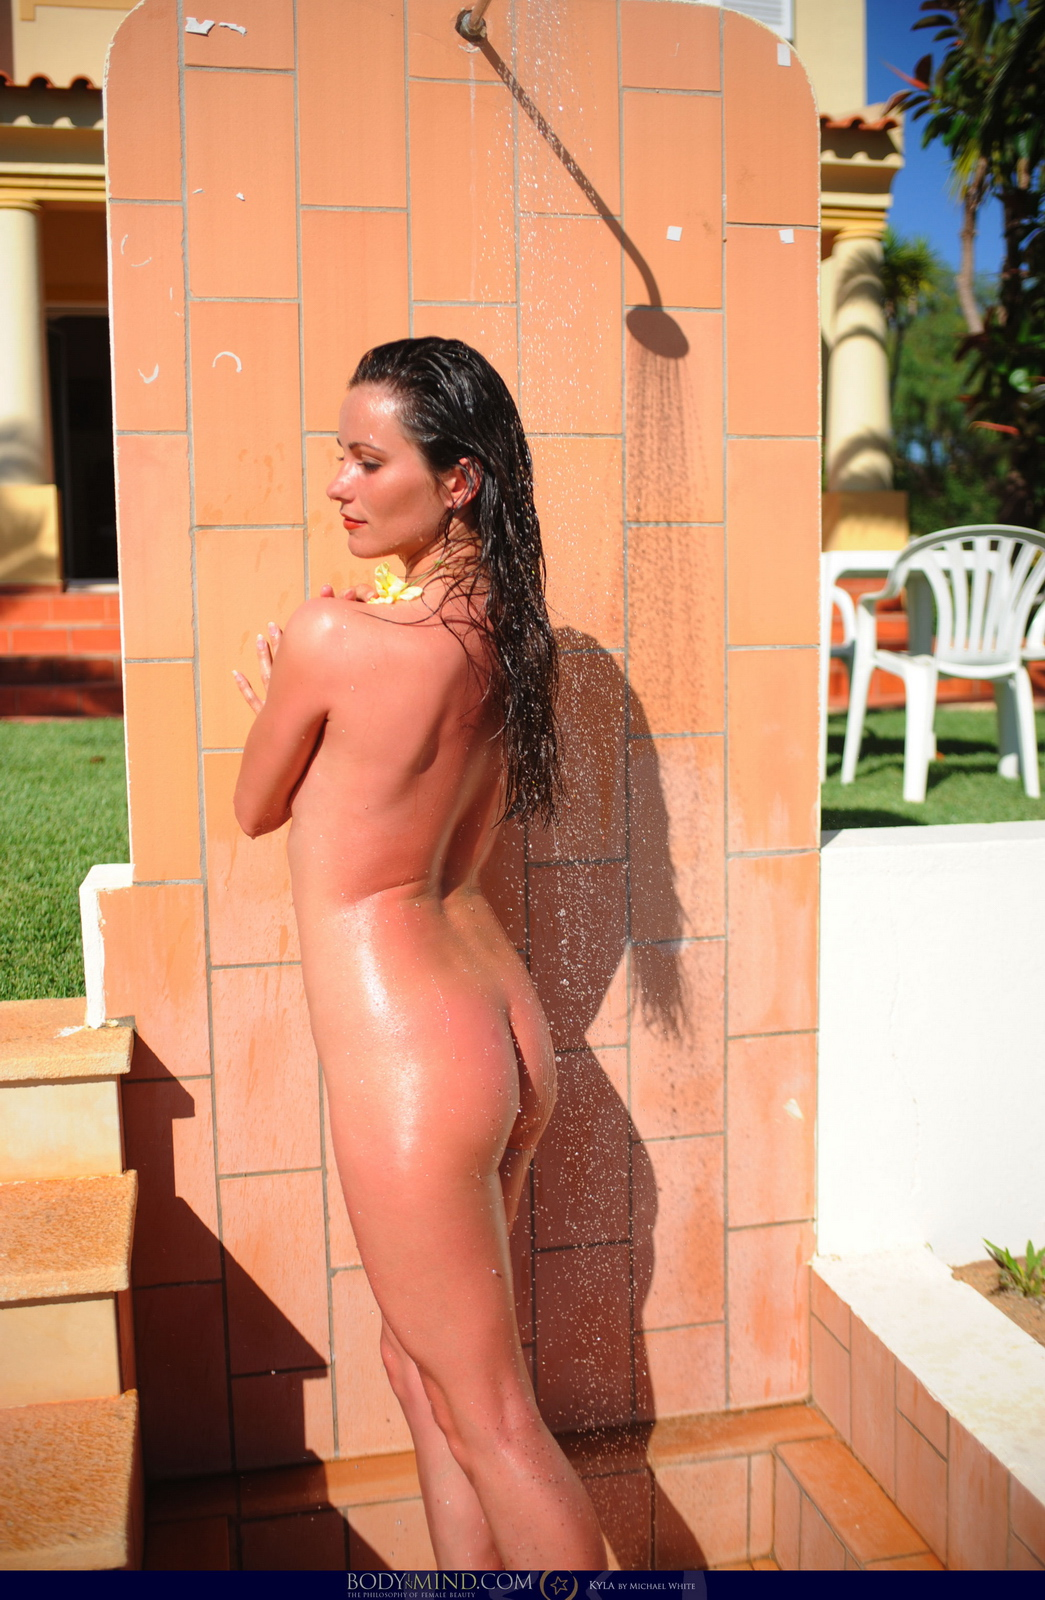 kyla-cole-boobs-flower-shower-garden-nude-bodyinmind-09